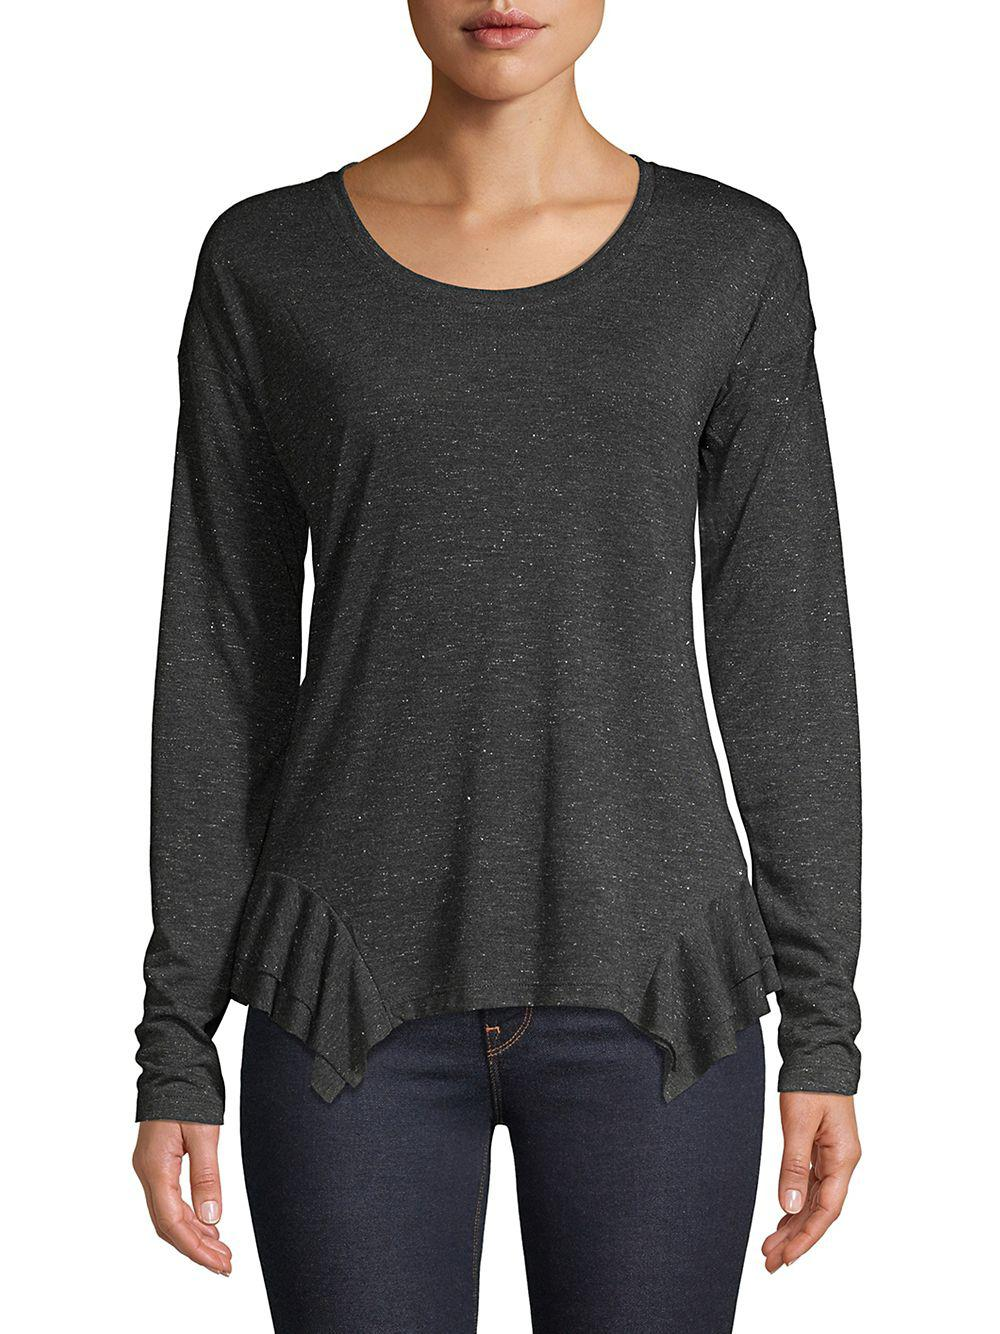 000afd106a2bb Lord   Taylor Ruffle Long-sleeve Top in Gray - Lyst